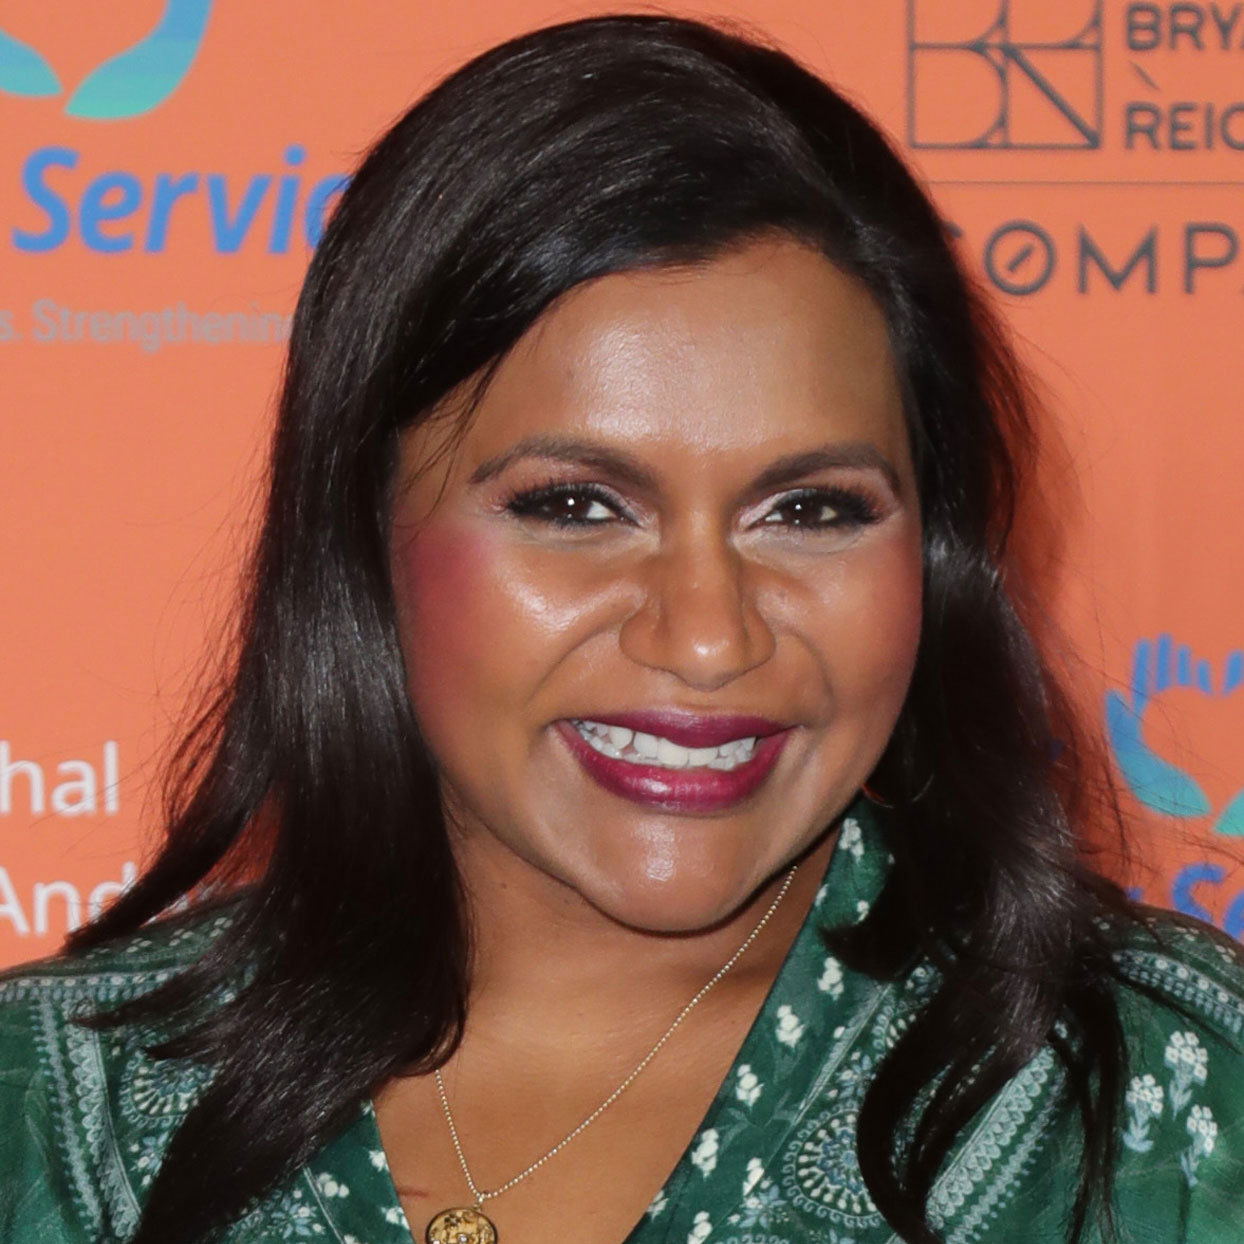 Mindy Kaling Tried Pumpkin Spice Products From Trader Joe's and Whole Foods and Her Reactions Are Hilarious